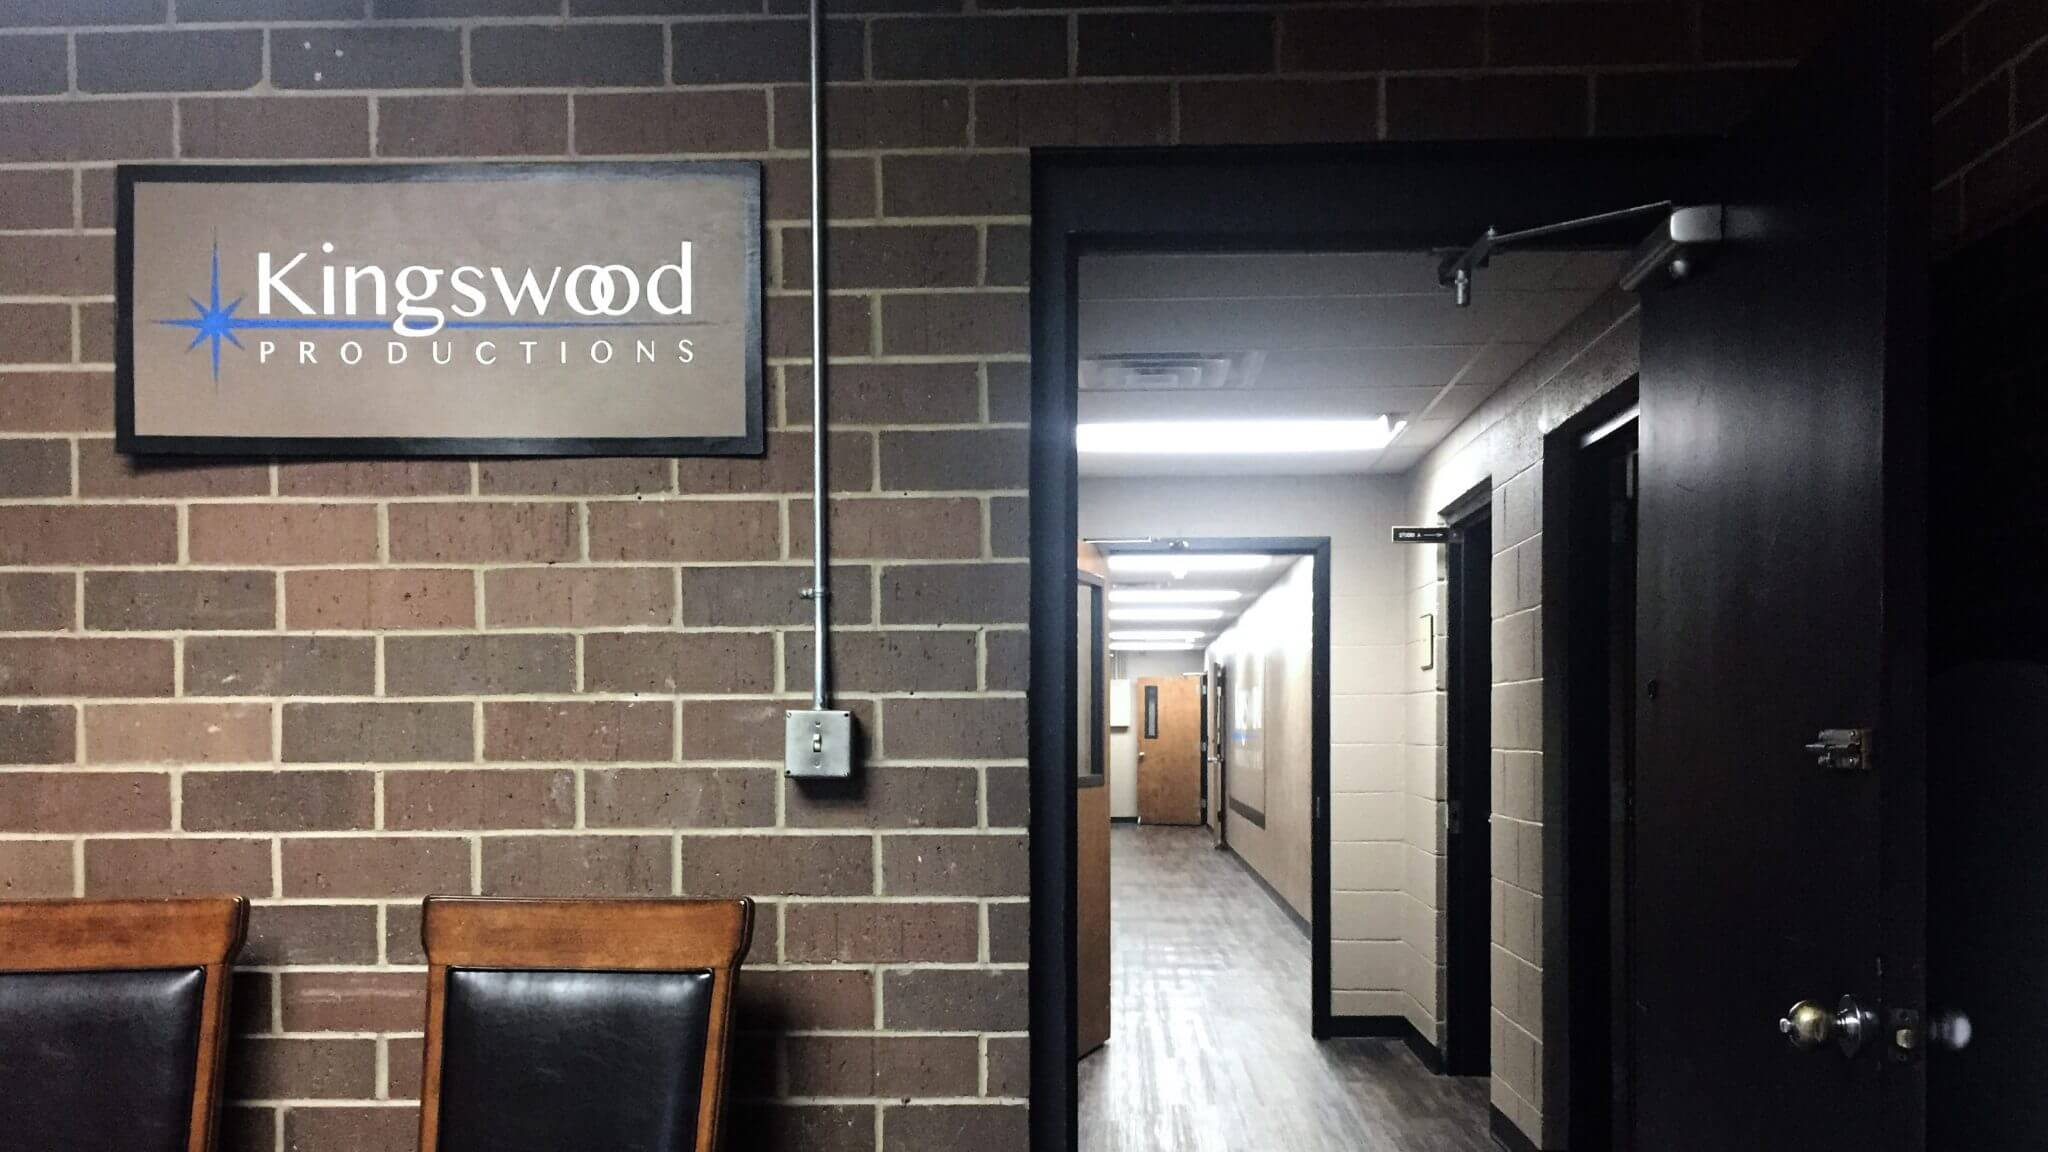 Pictured here is the entrance to Kingswood Productions in Nashville, Tenn.